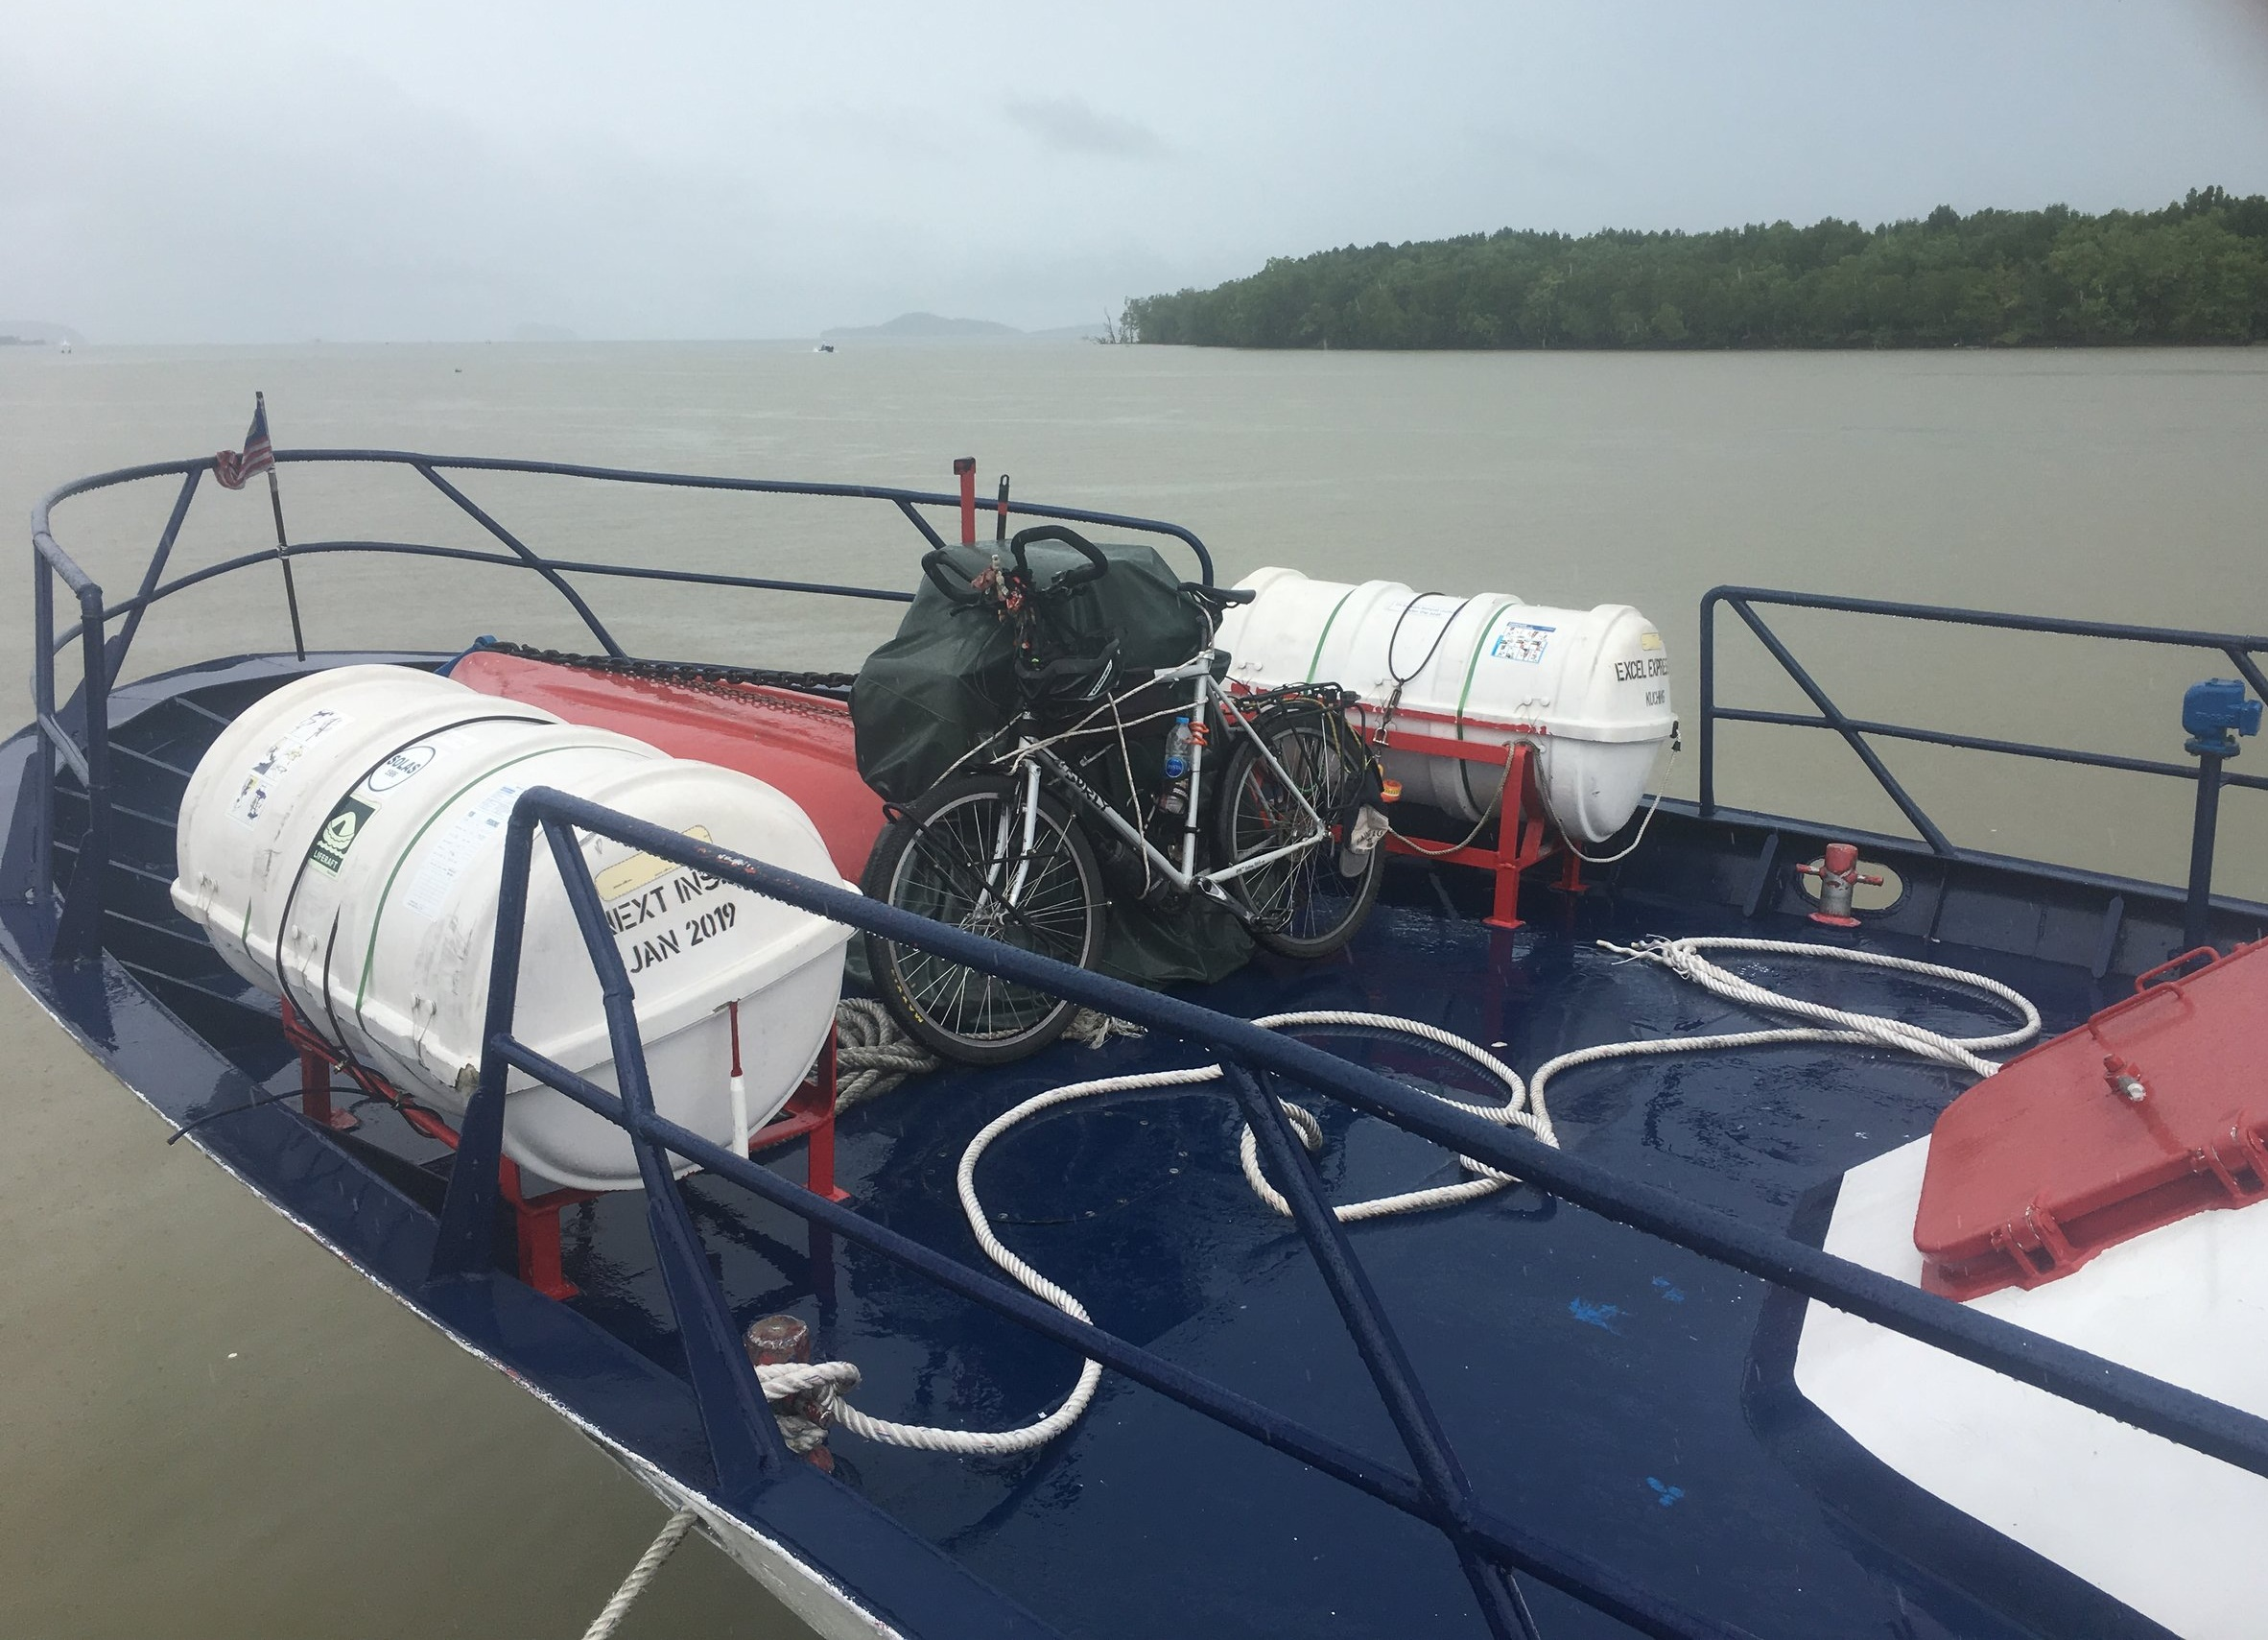 Surley Temple loaded onto the boat on route to Langkawi Island, Malaysia